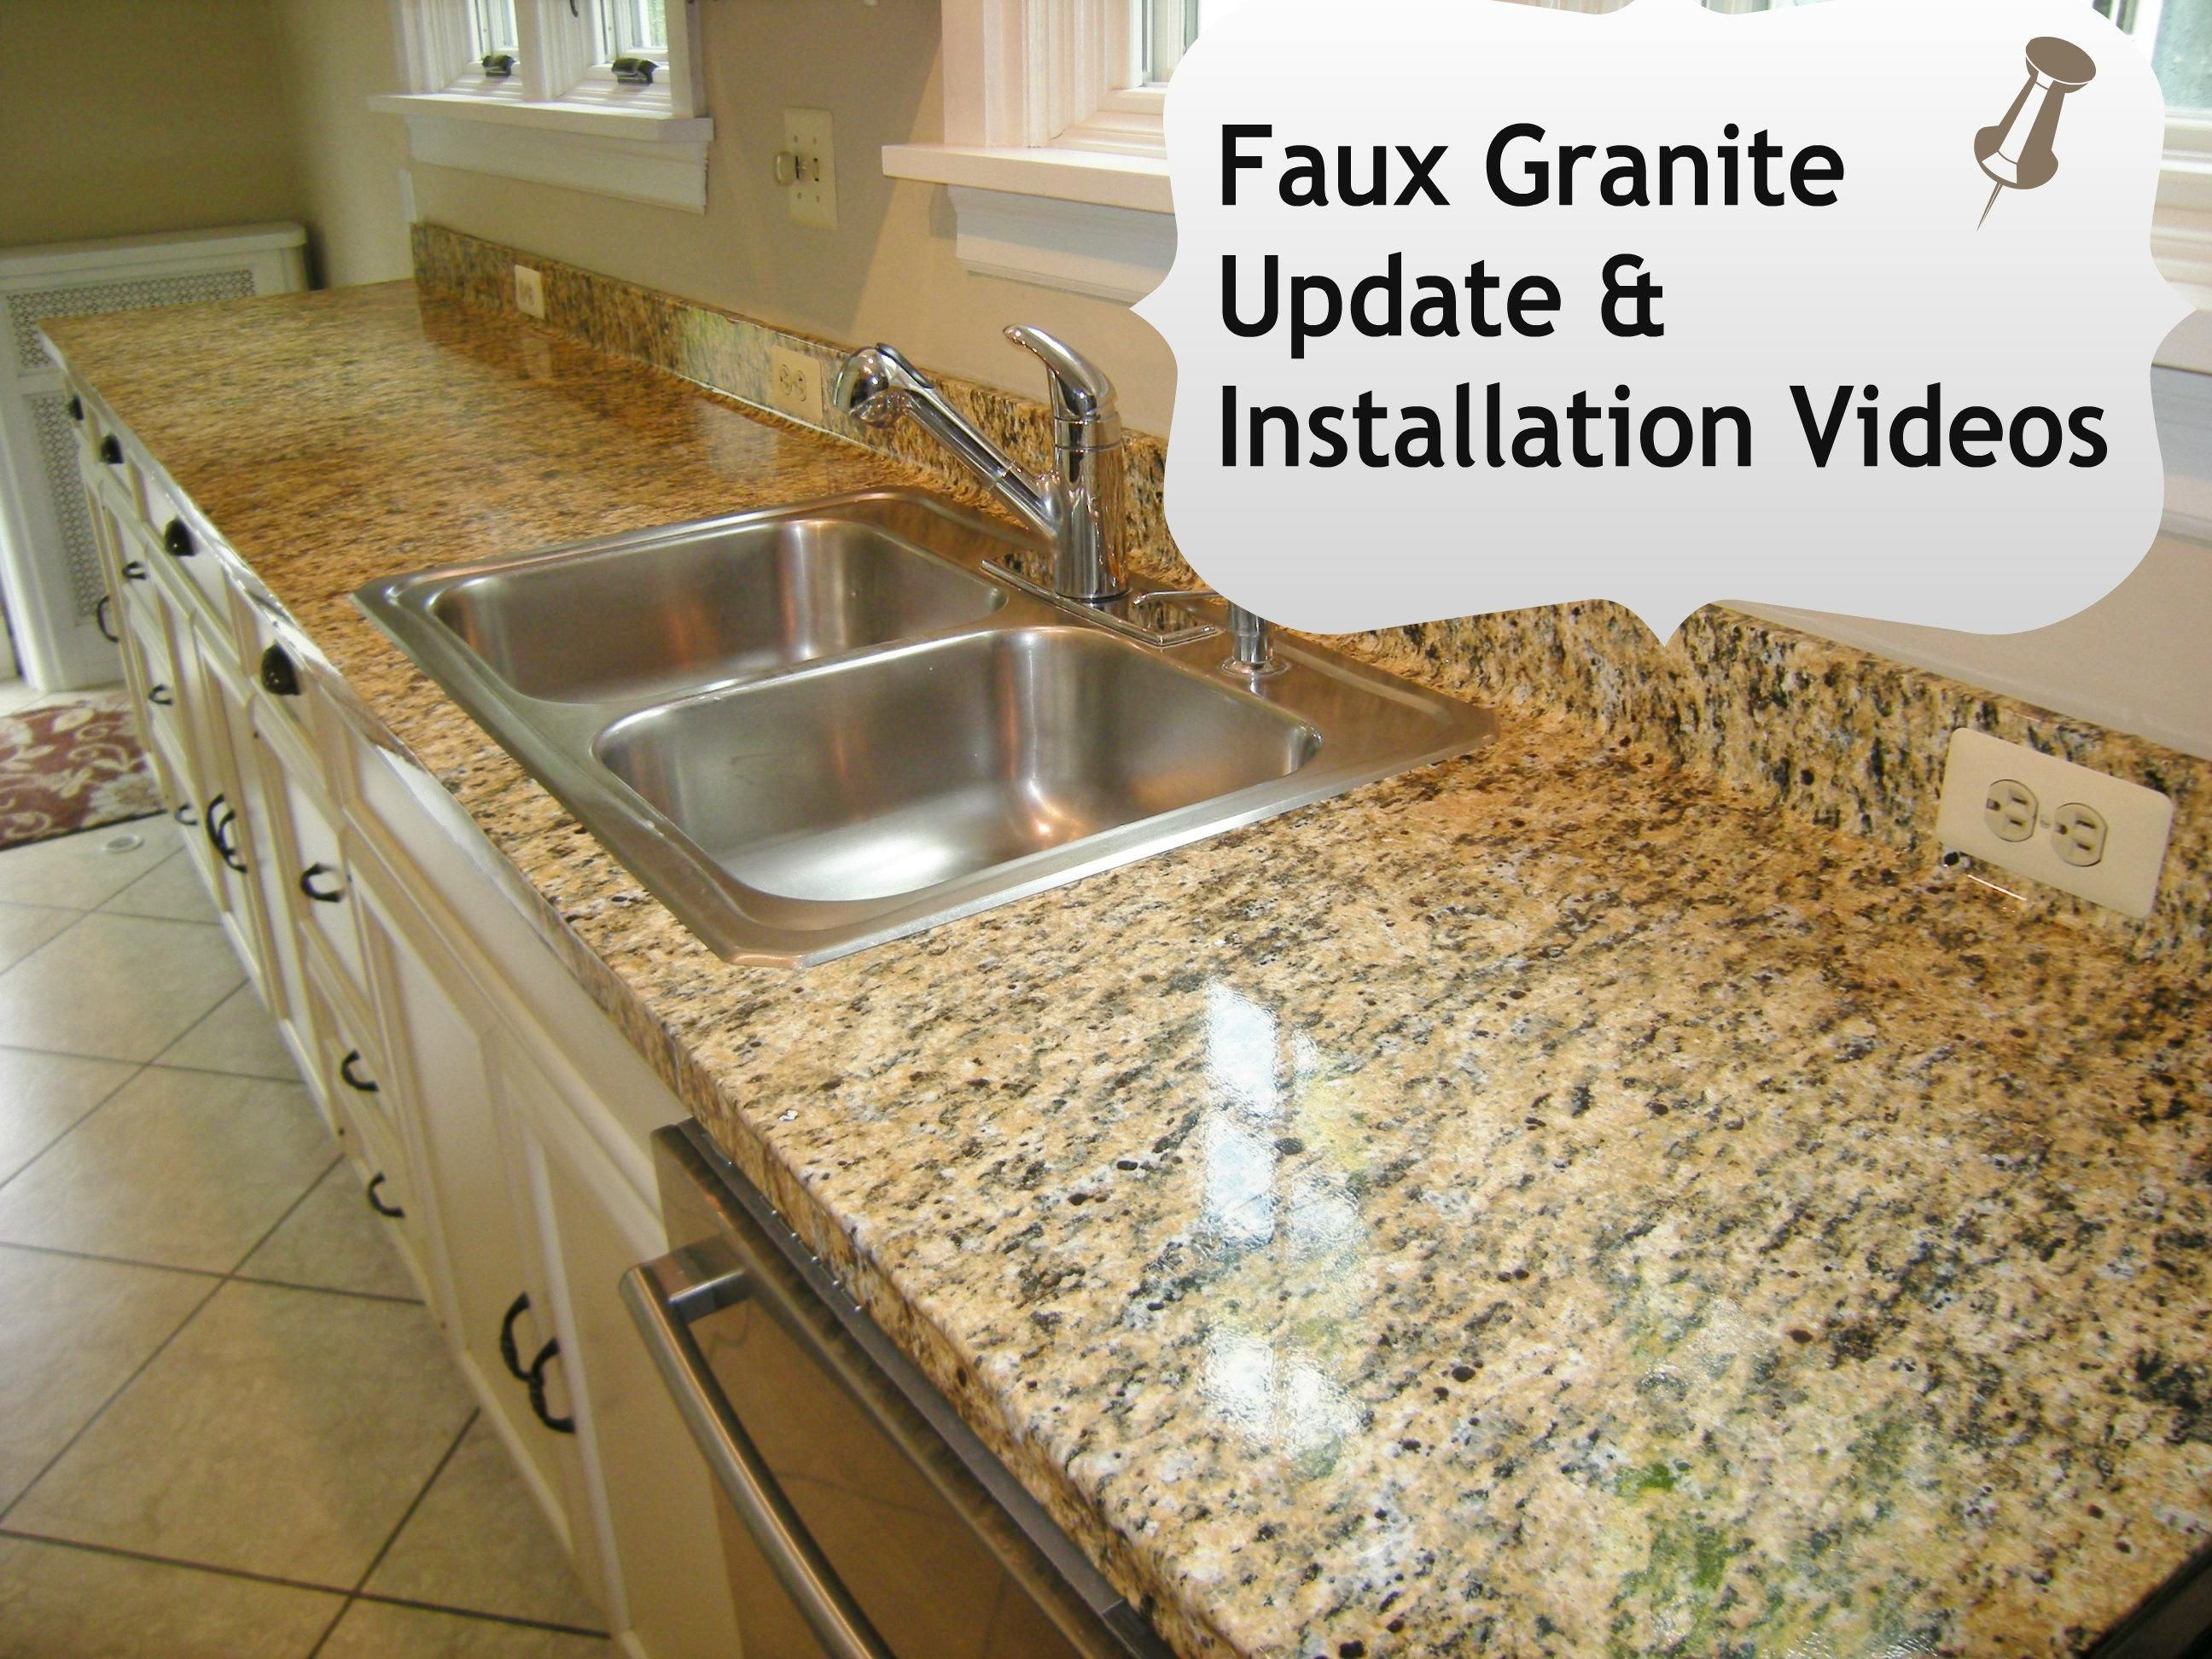 Bathroom Makeover Granite faux granite kitchen counters in minutes with @ez instant makeover